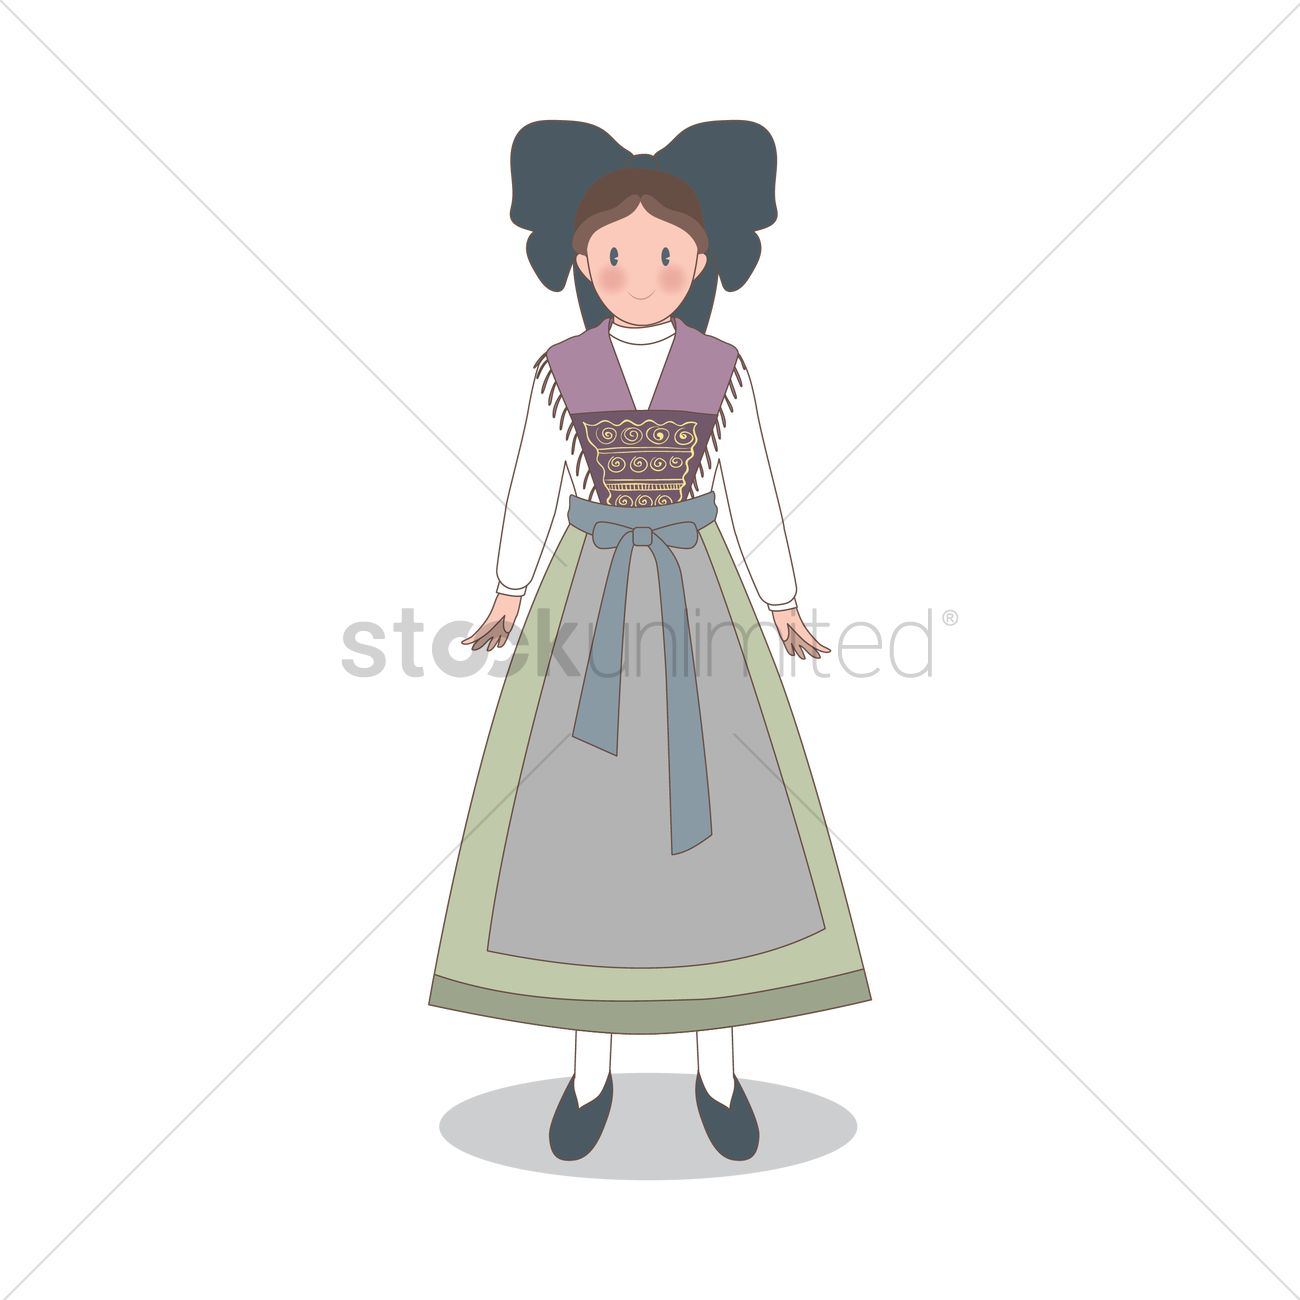 Free Woman Wearing France Traditional Dress Vector Image